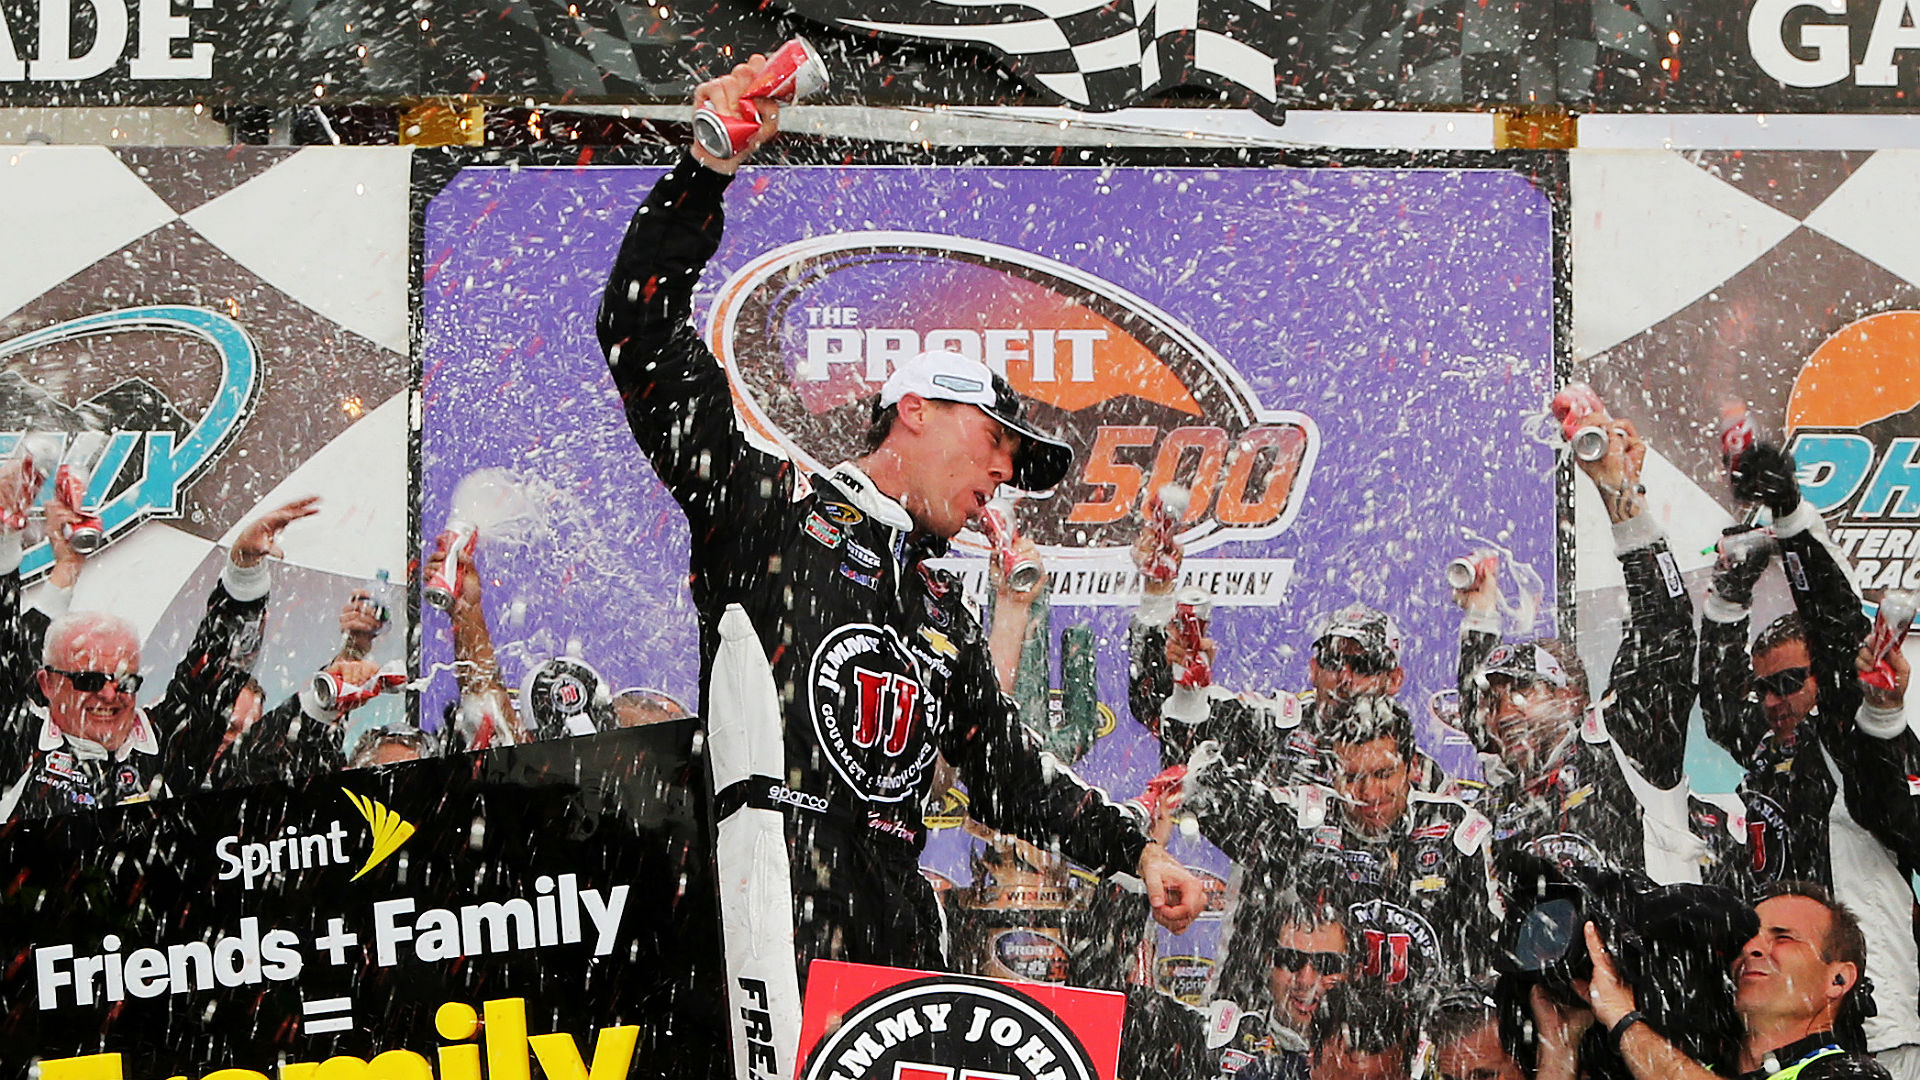 Kevin-Harvick-031515-FTR-Getty.jpg